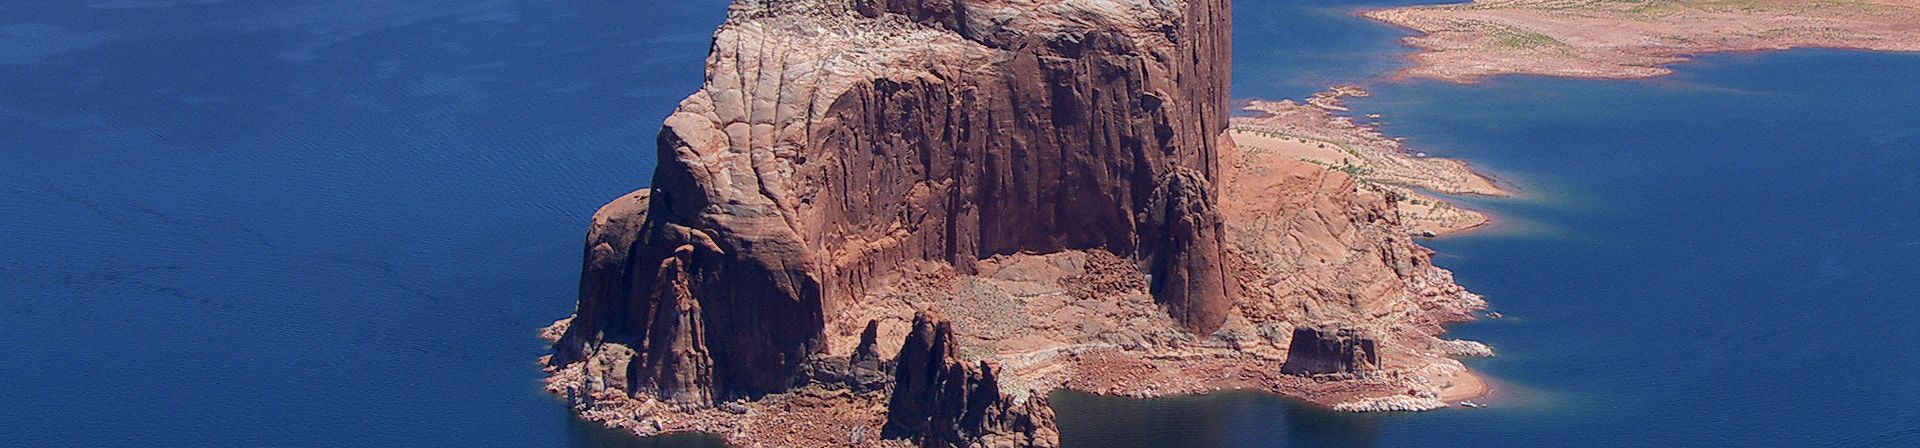 Aerial view of rock formations at Lake Powell